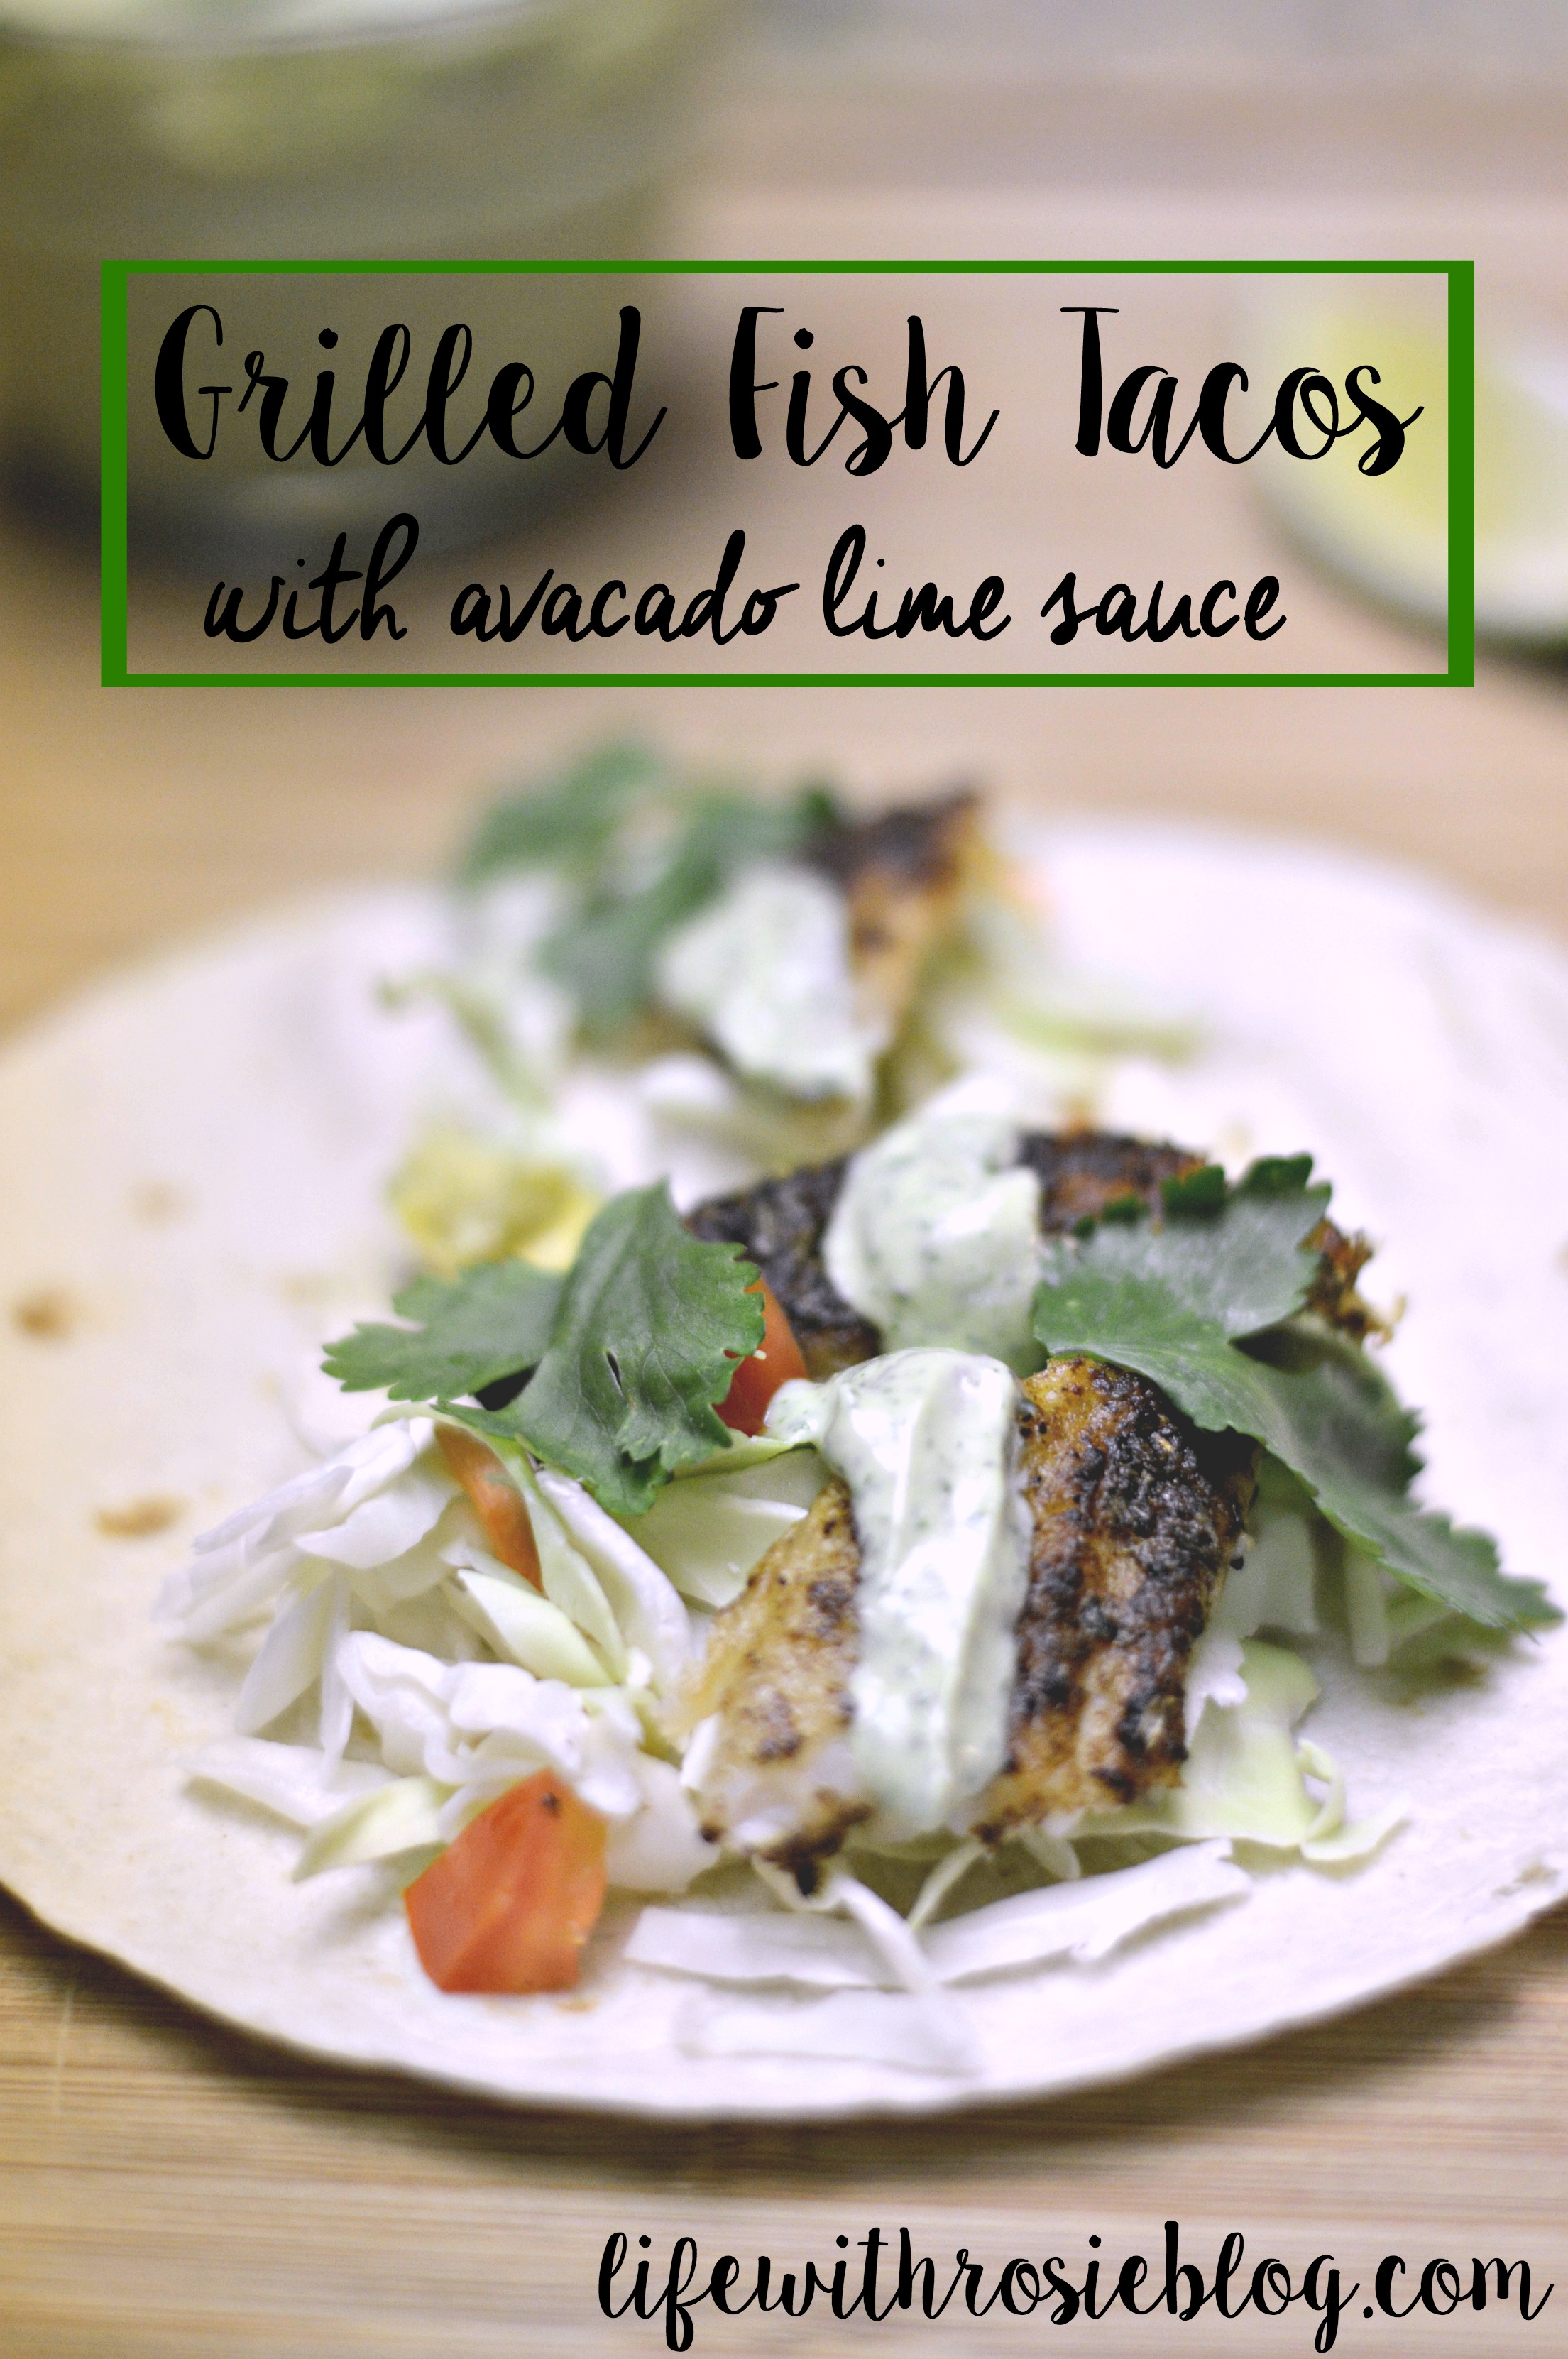 Grilled Fish Tacos with Avacado Lime Sauce // Life with Rosie